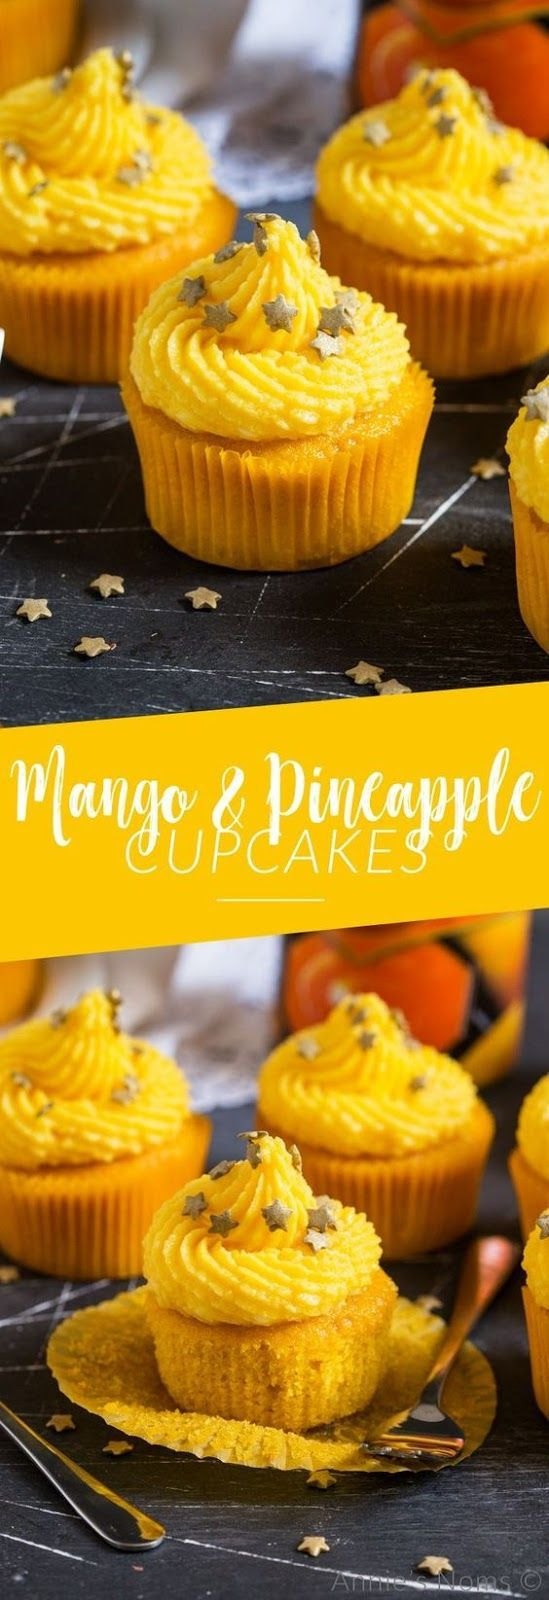 41 Most Repinned and Popular Recipes on Pinterest (Must Try) images